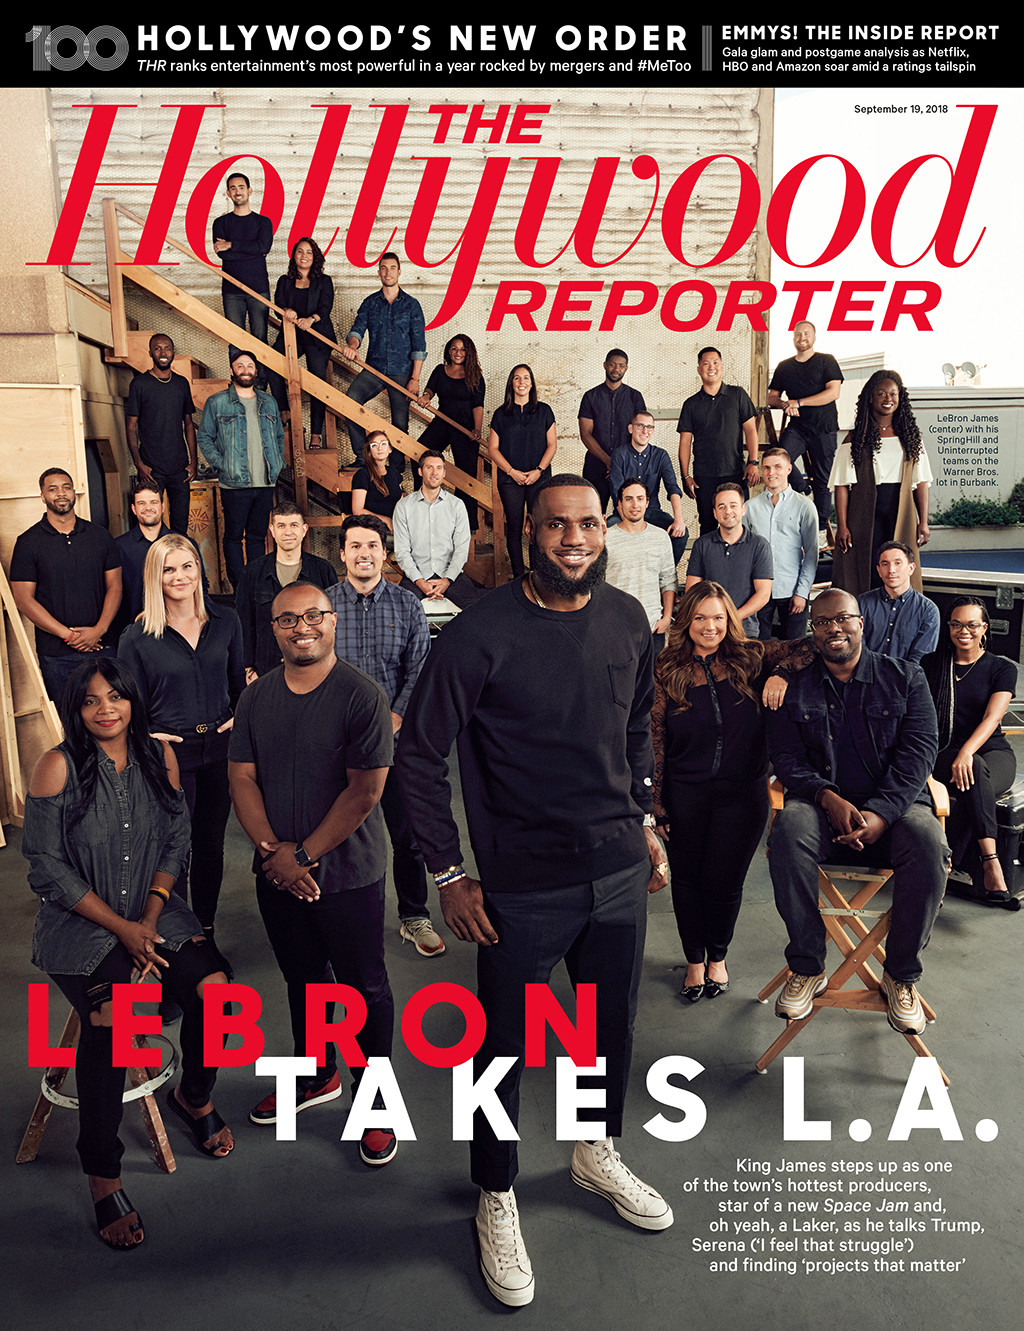 LeBron James, The Hollywood Reporter